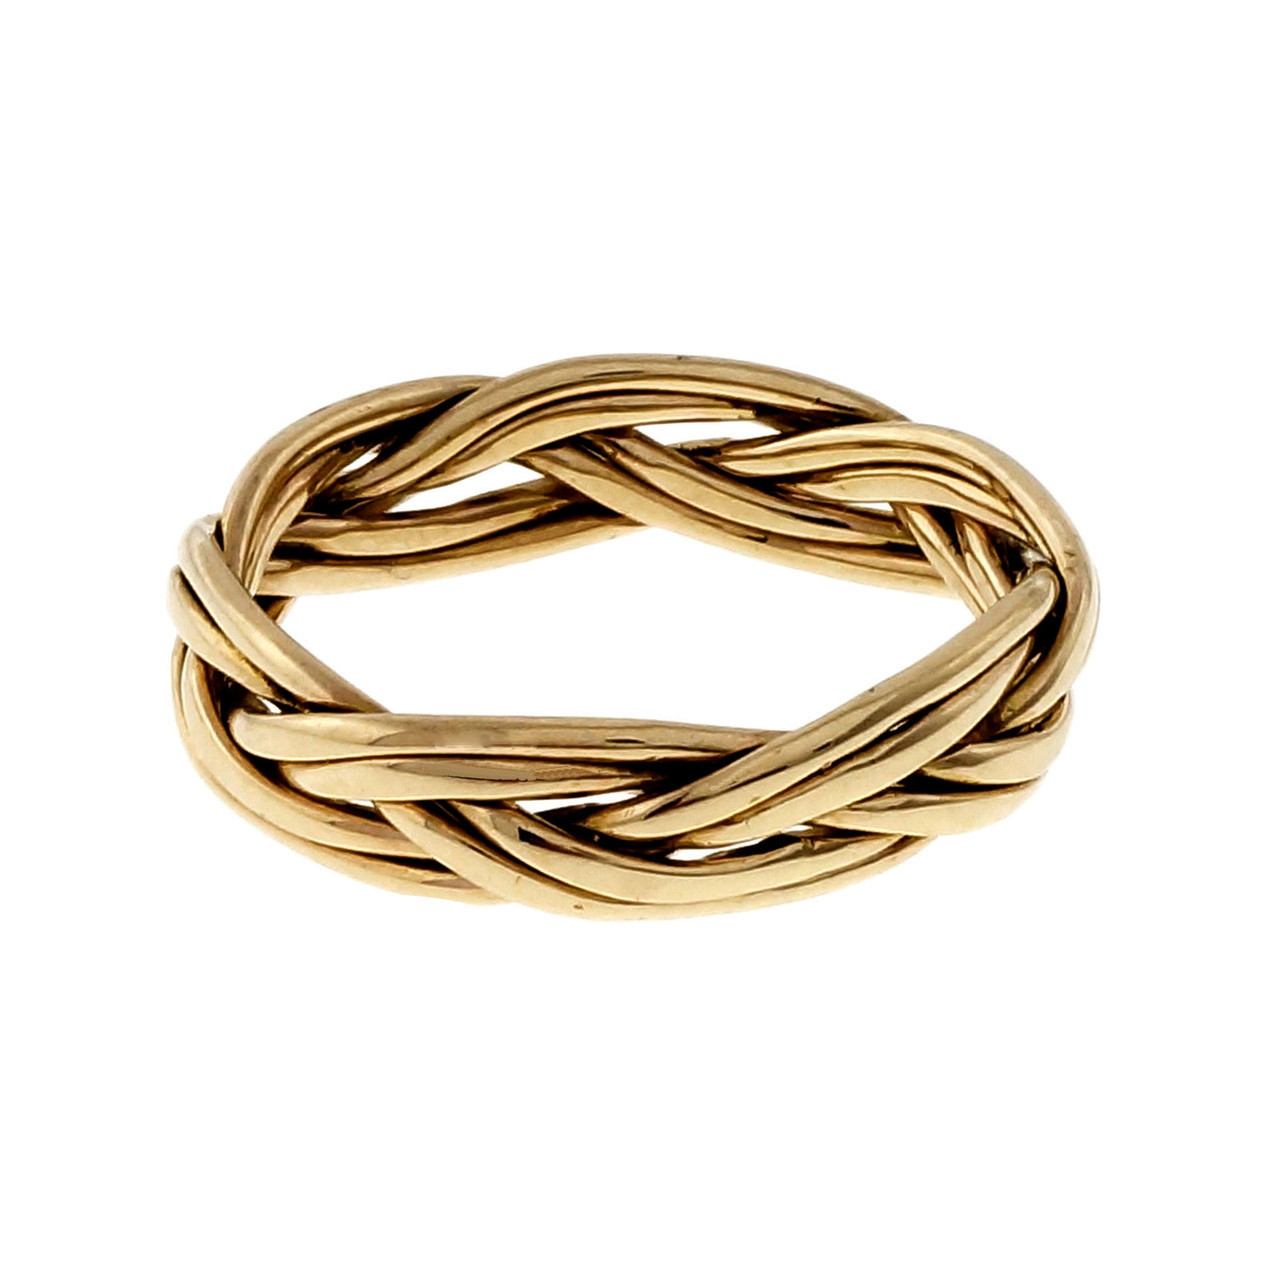 medium resolution of estate hand braided wire wedding band ring 14k yellow gold petersuchyjewelers